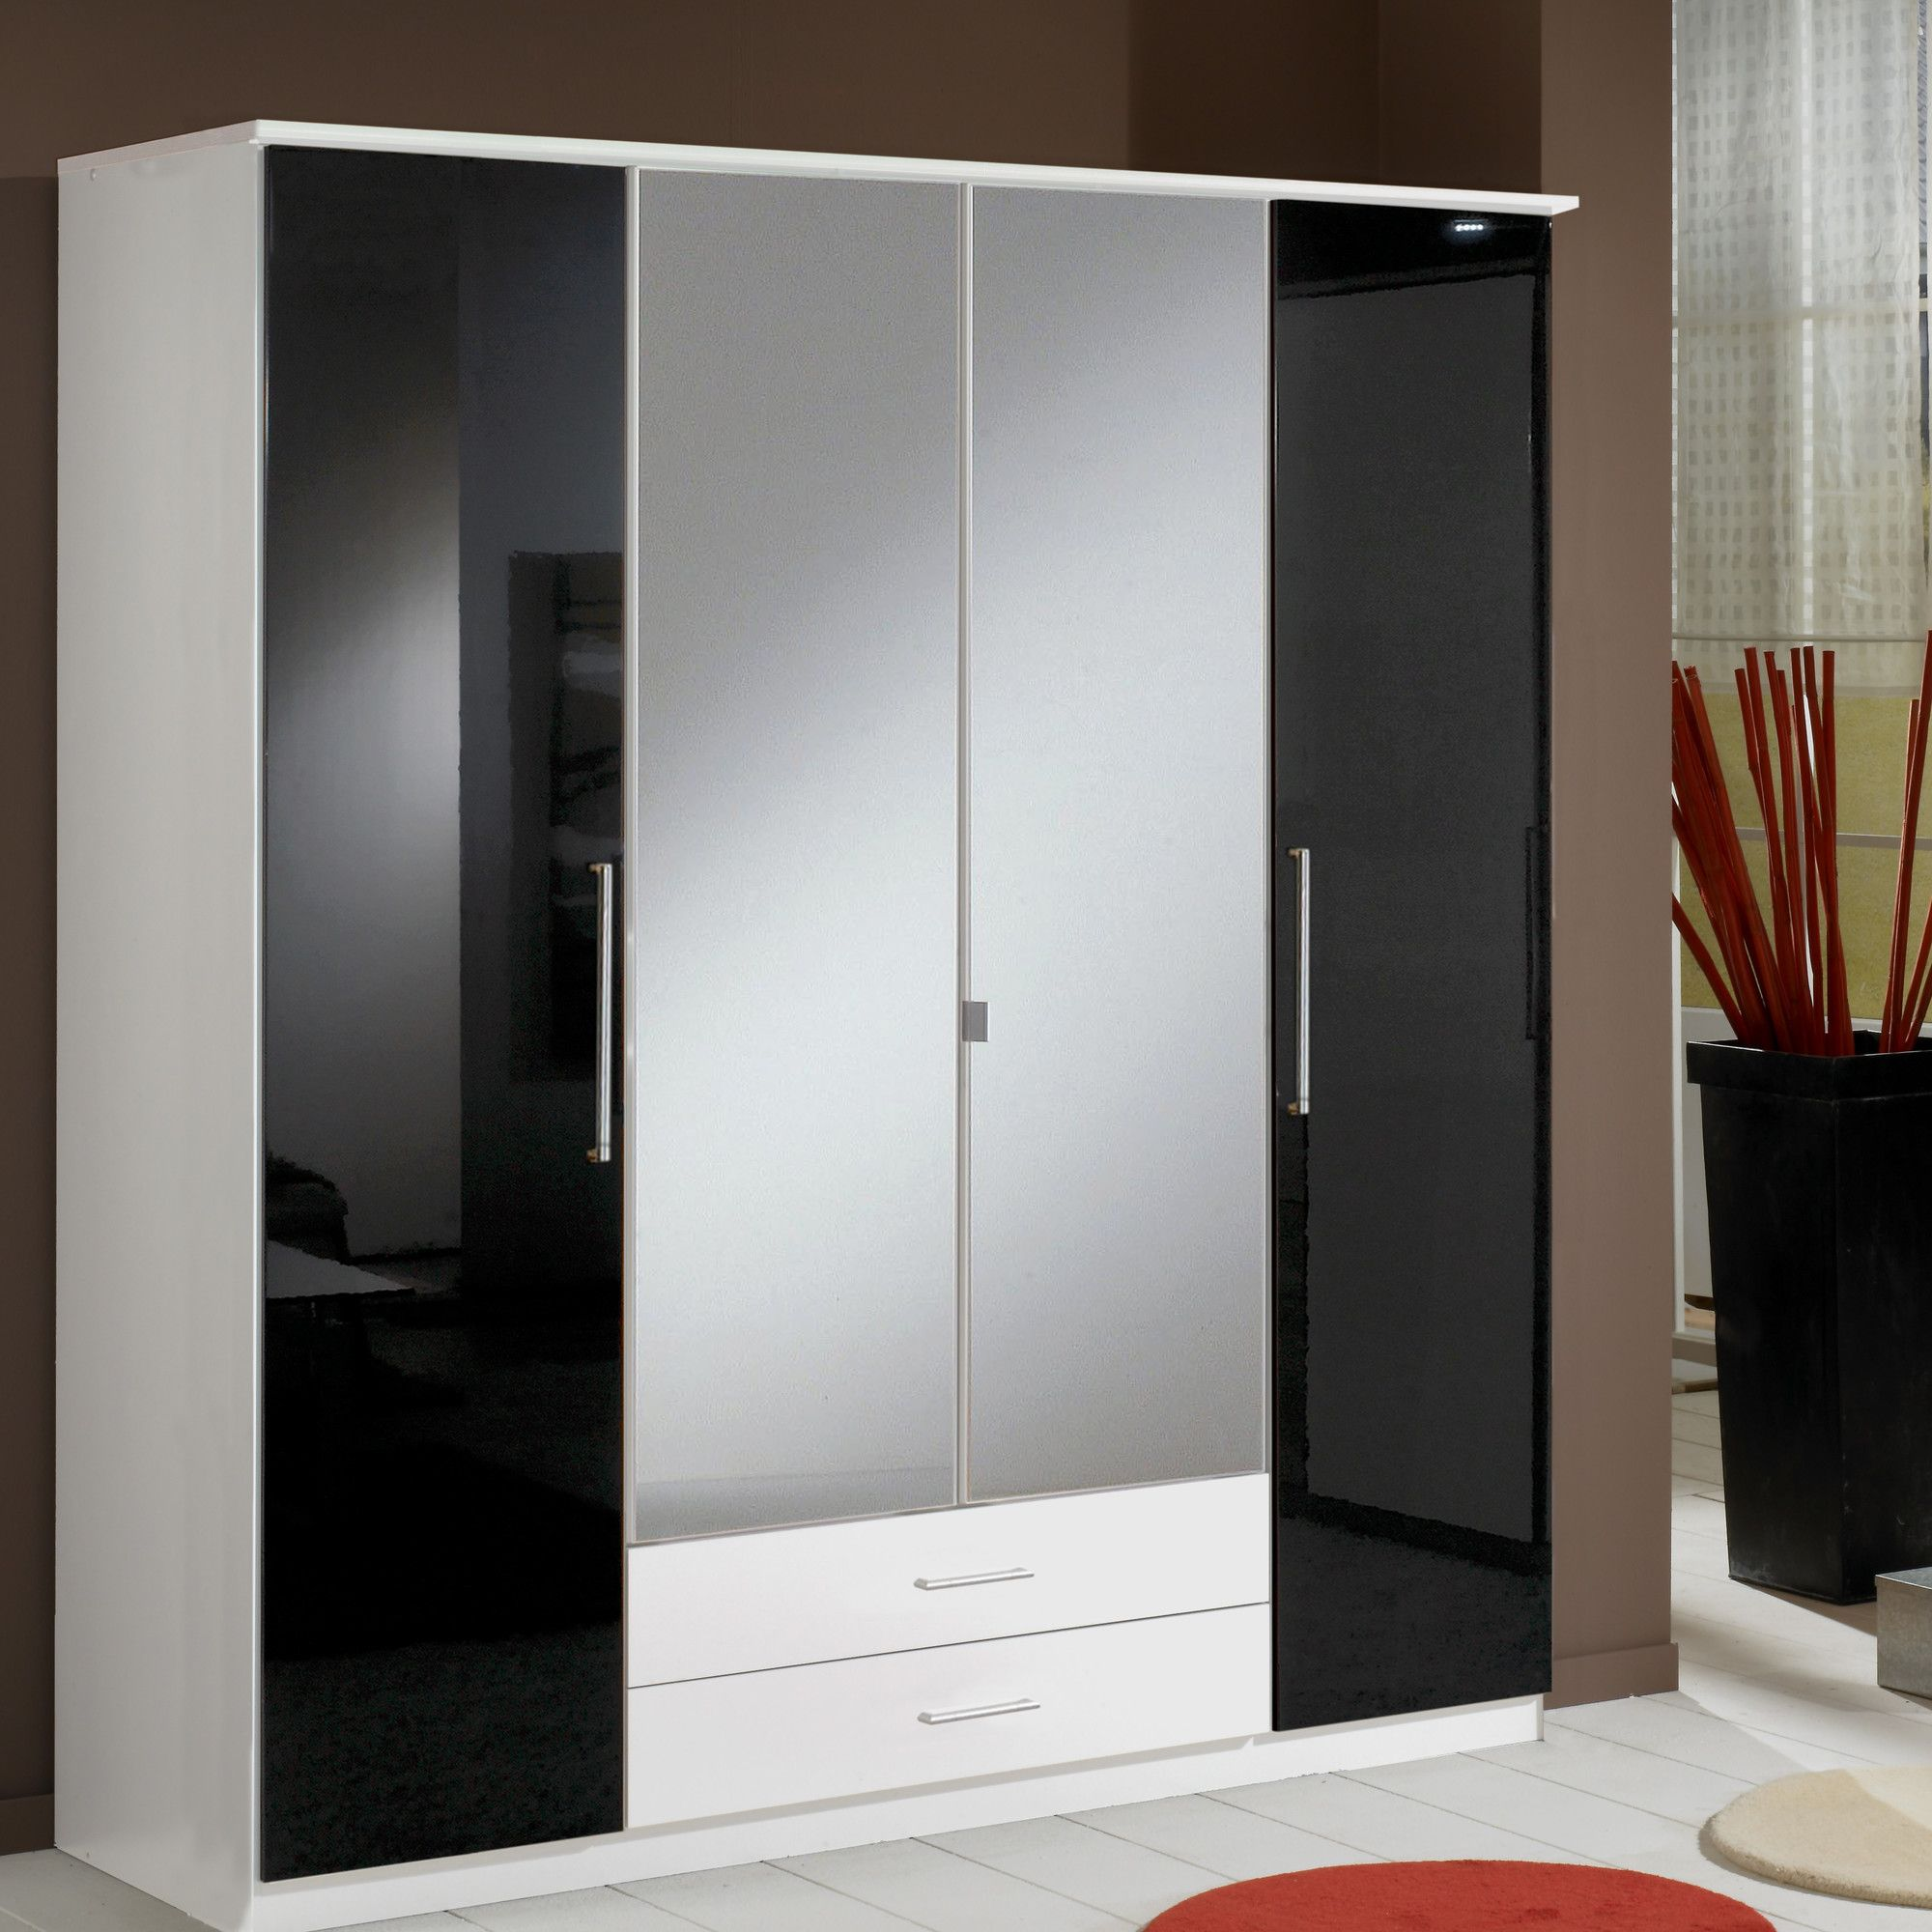 Amos Mann furniture Milano 4 Door 2 Drawer Wardrobe - Black and White at Tesco Direct